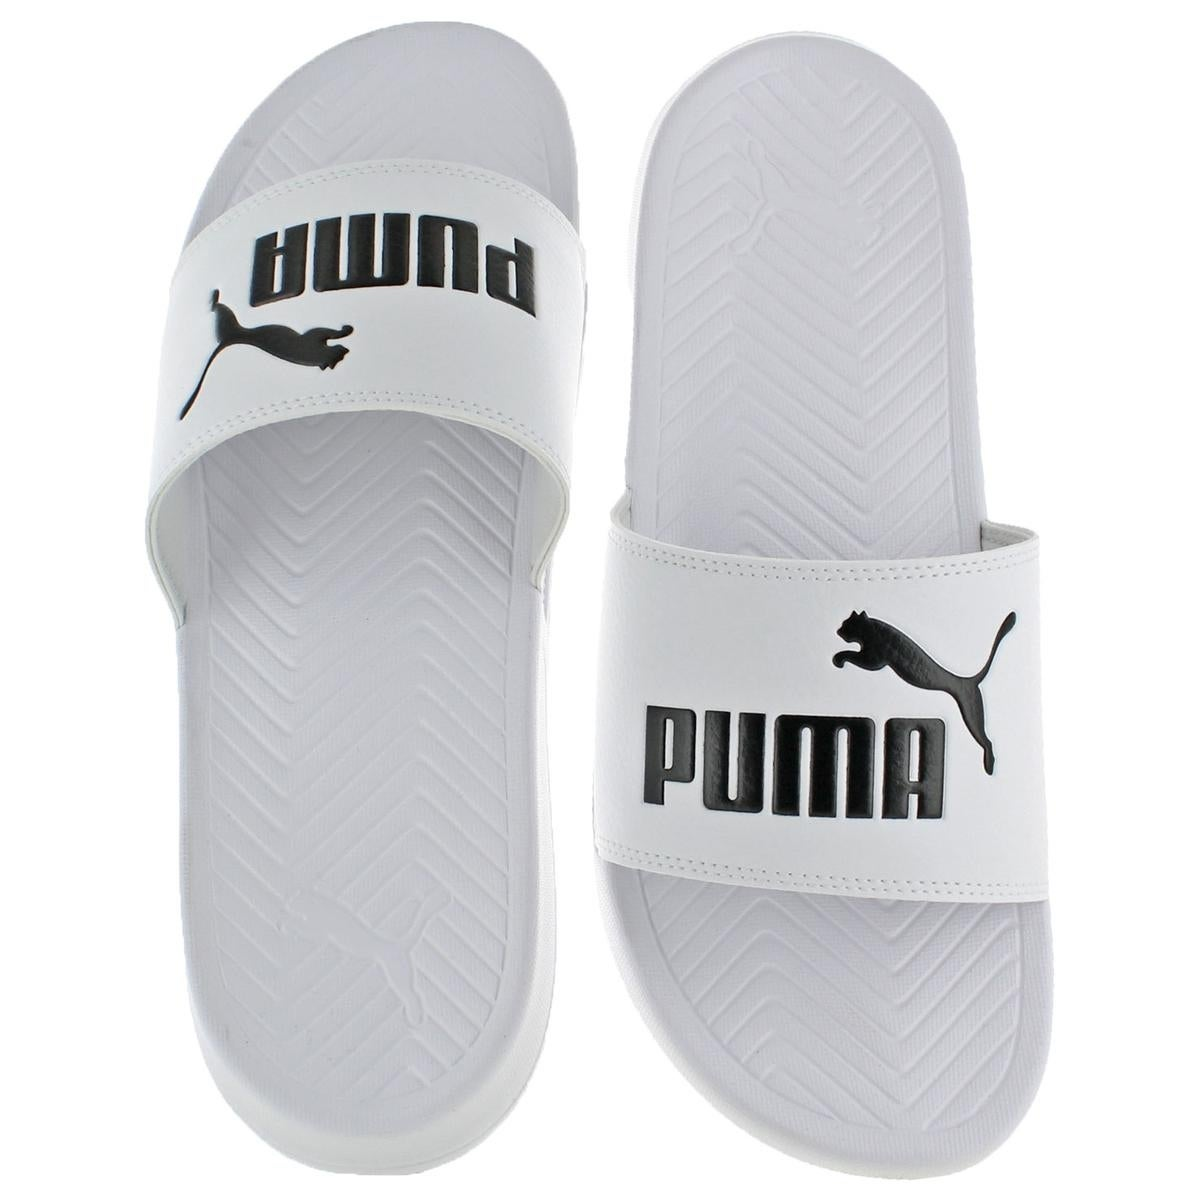 03c6ec6e35c Shop Puma Mens Popcat Slide Sandals Lightweight Pool Slide - Free Shipping  On Orders Over  45 - Overstock - 22320581